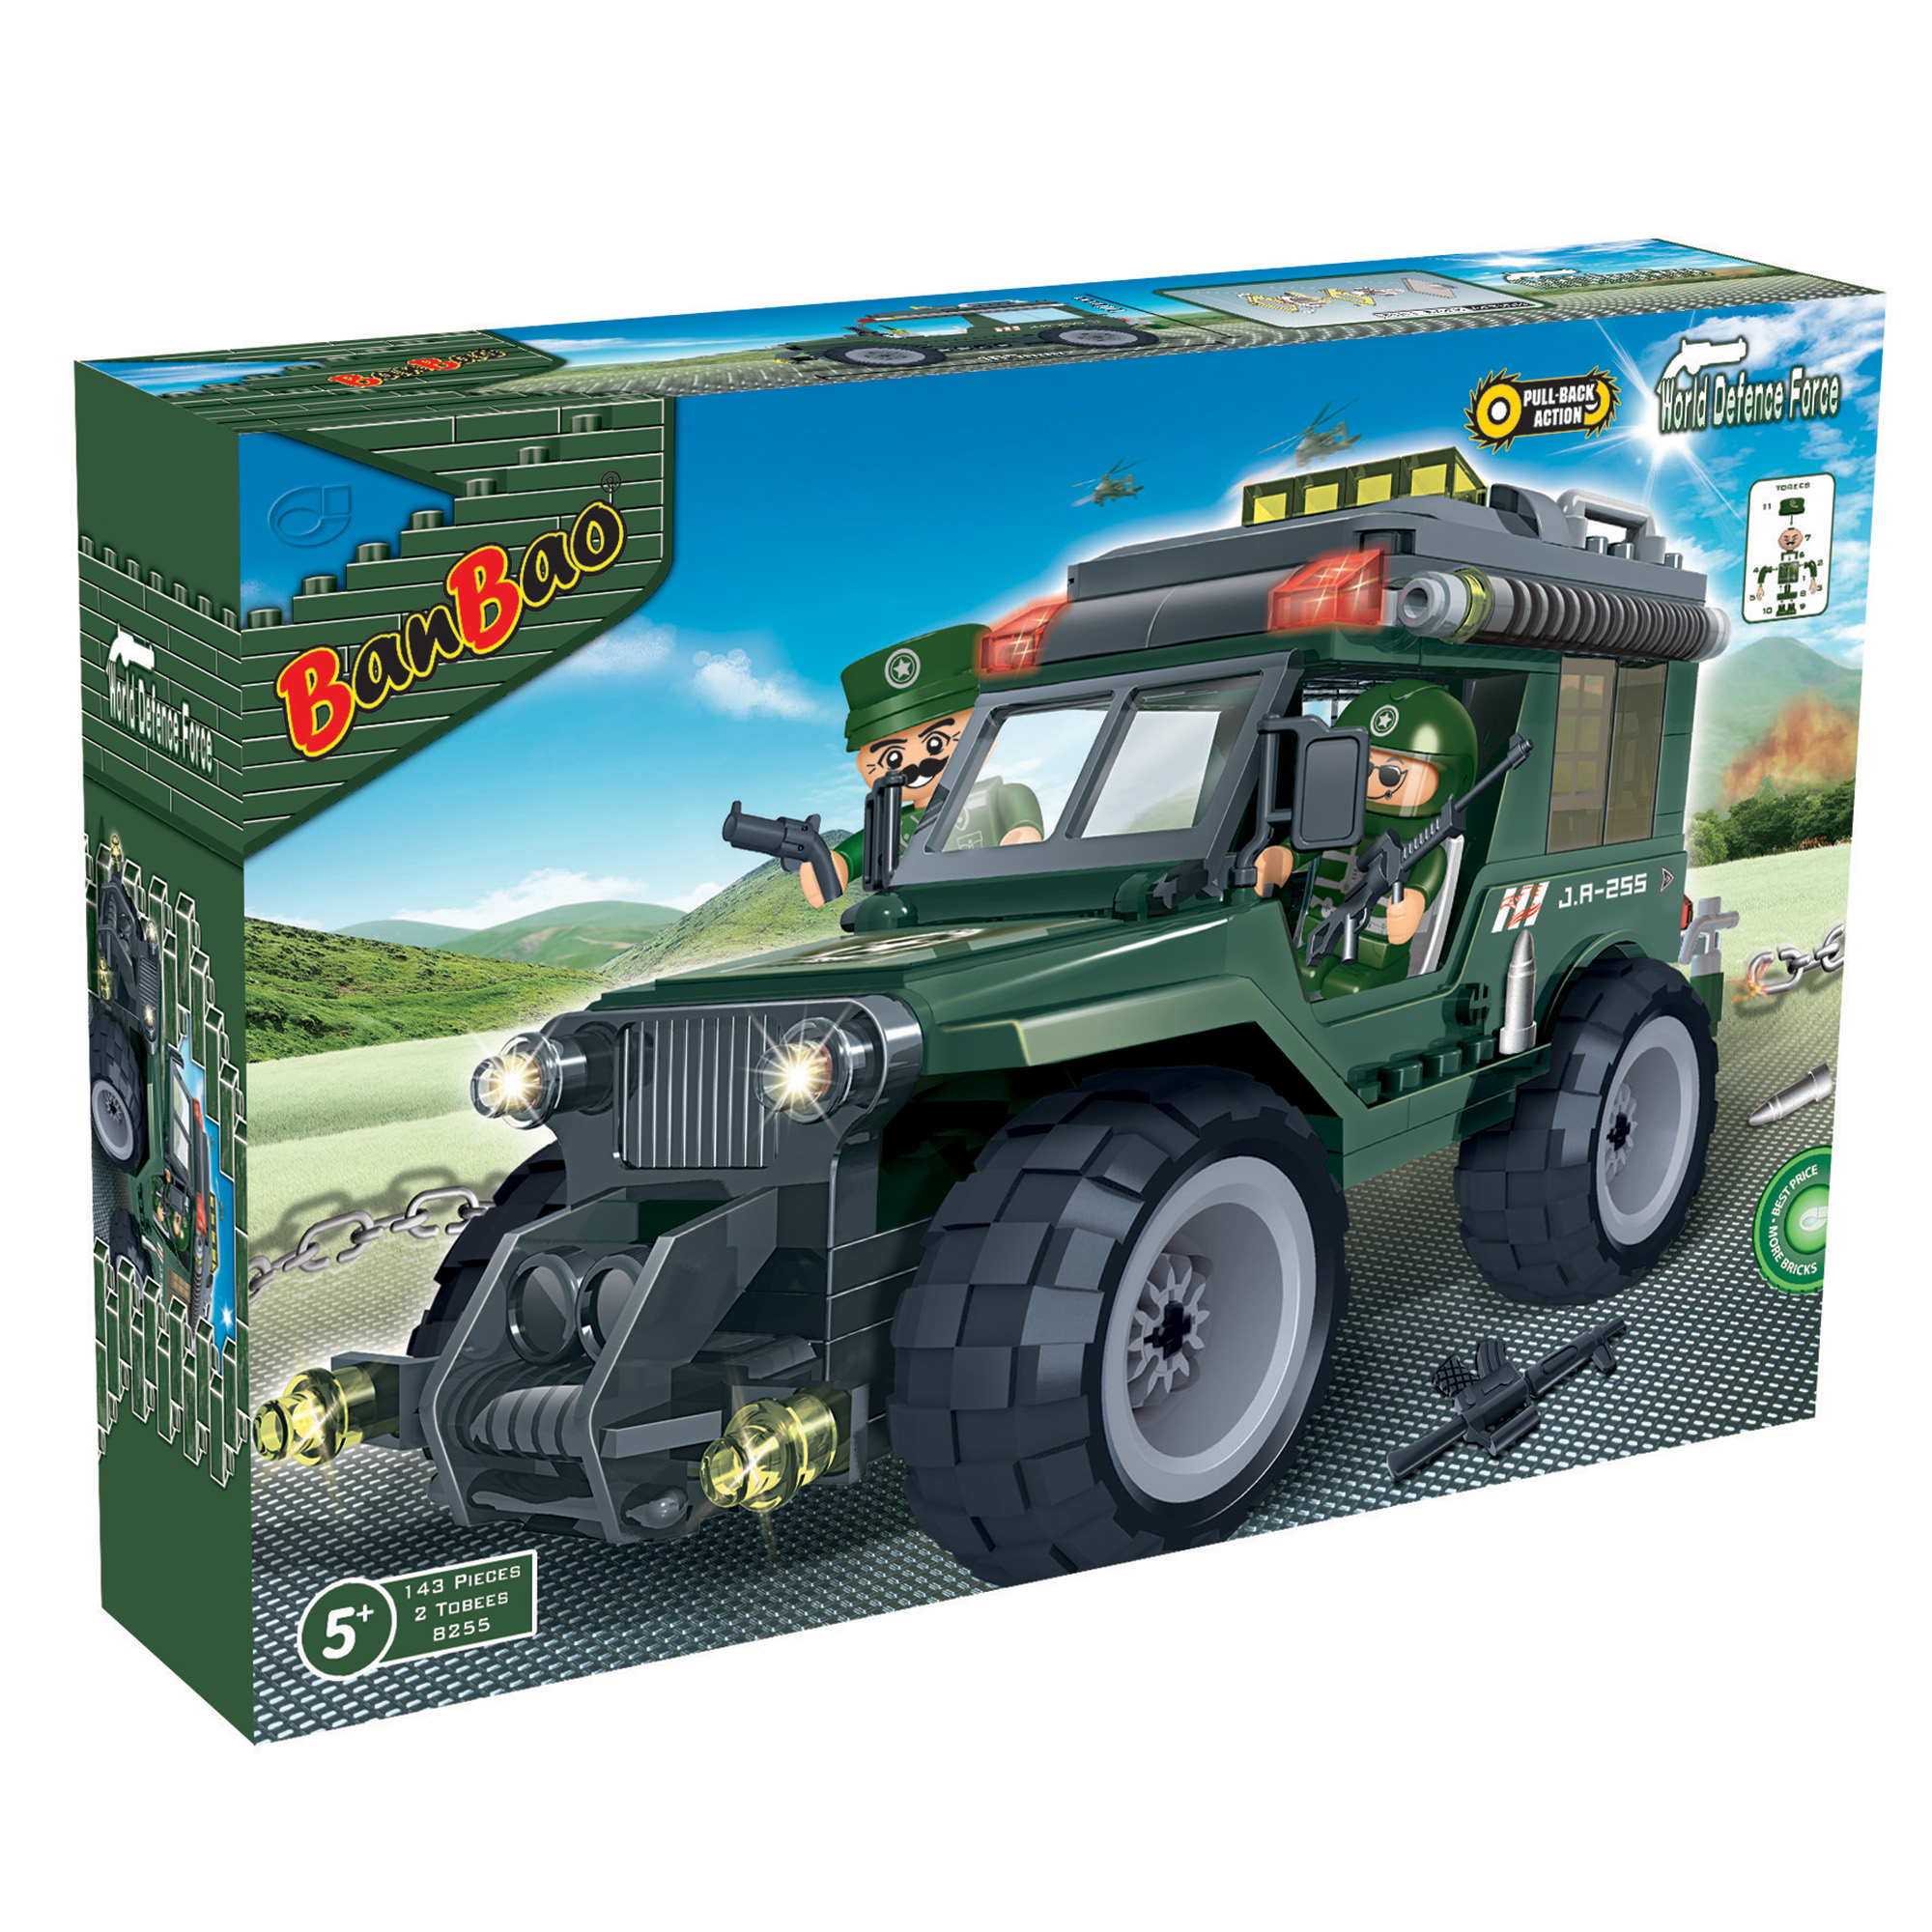 Defence Force - Jeep Militaire